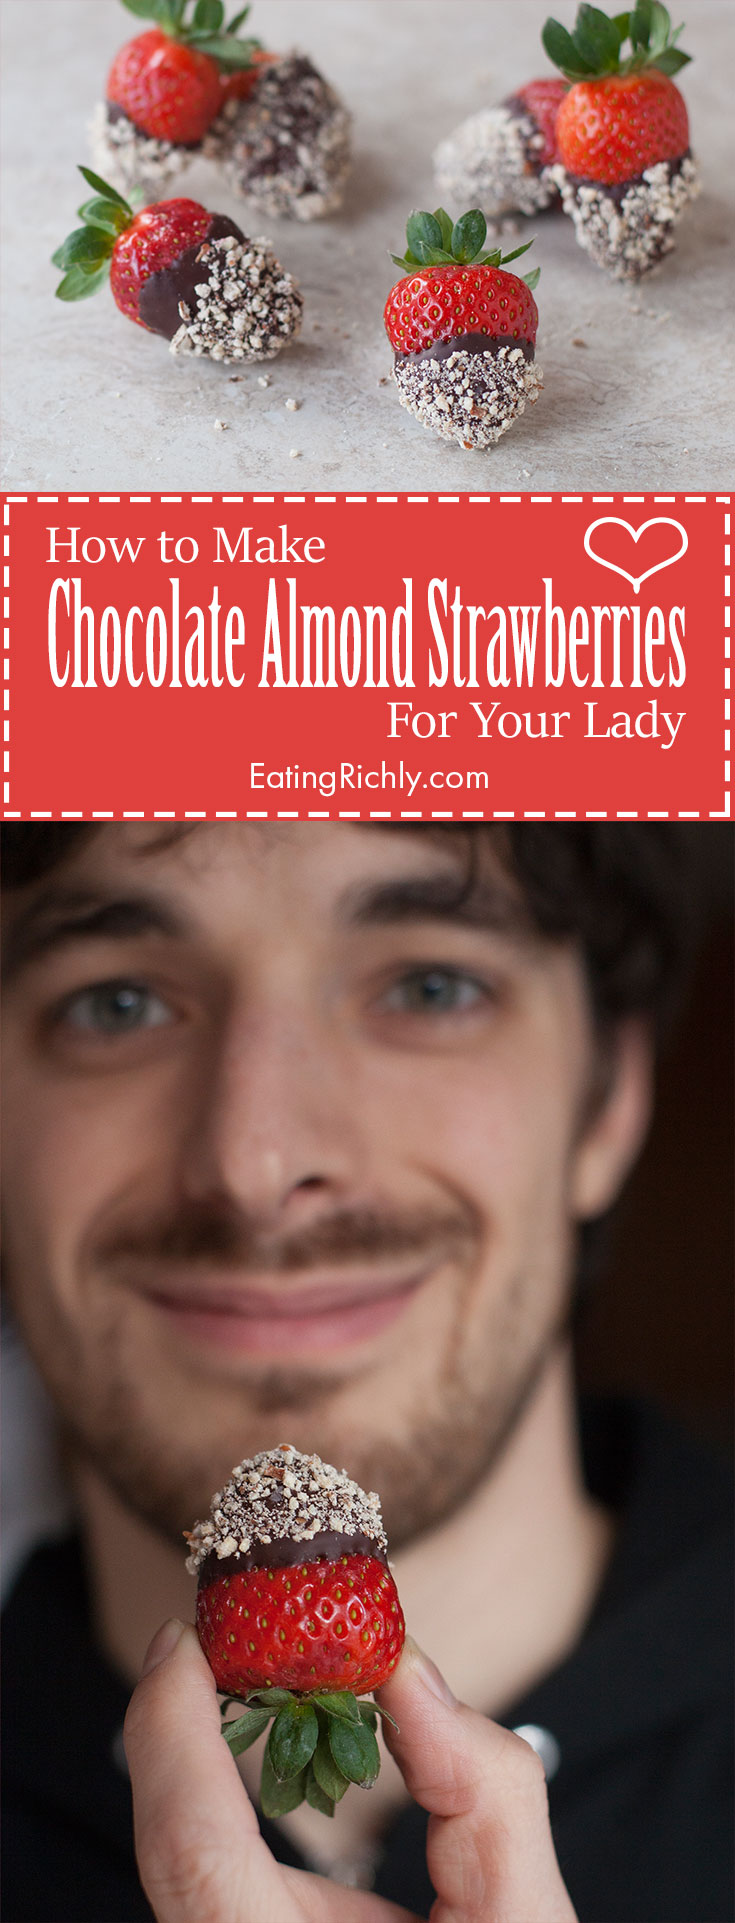 These dark chocolate almond covered strawberries are the perfect Valentine dessert for you to surprise their wife or girlfriend with. They're swoon worthy! From EatingRichly.com